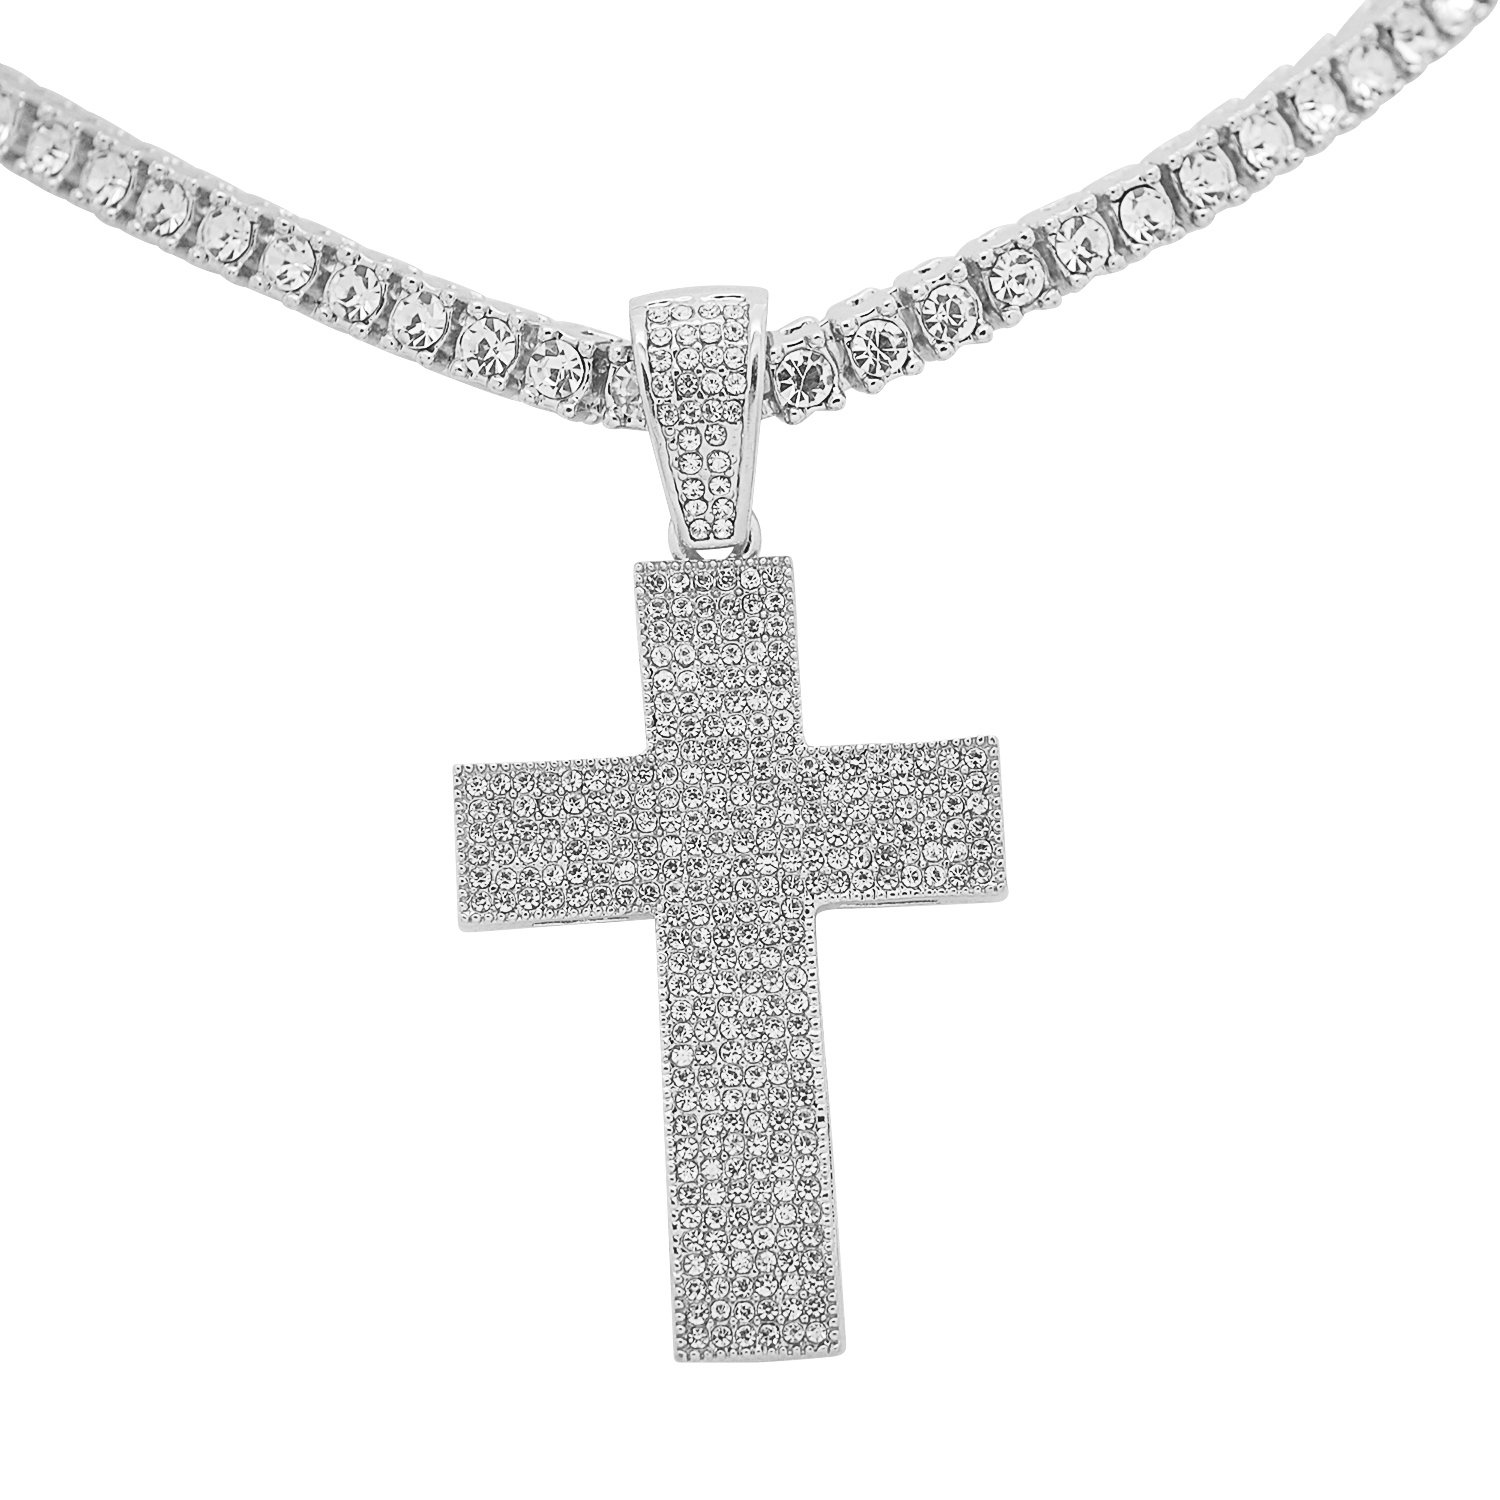 White Gold-Tone Iced Out Hip Hop Bling Cross Pendant with 1 Row Stones Tennis  Chain 16